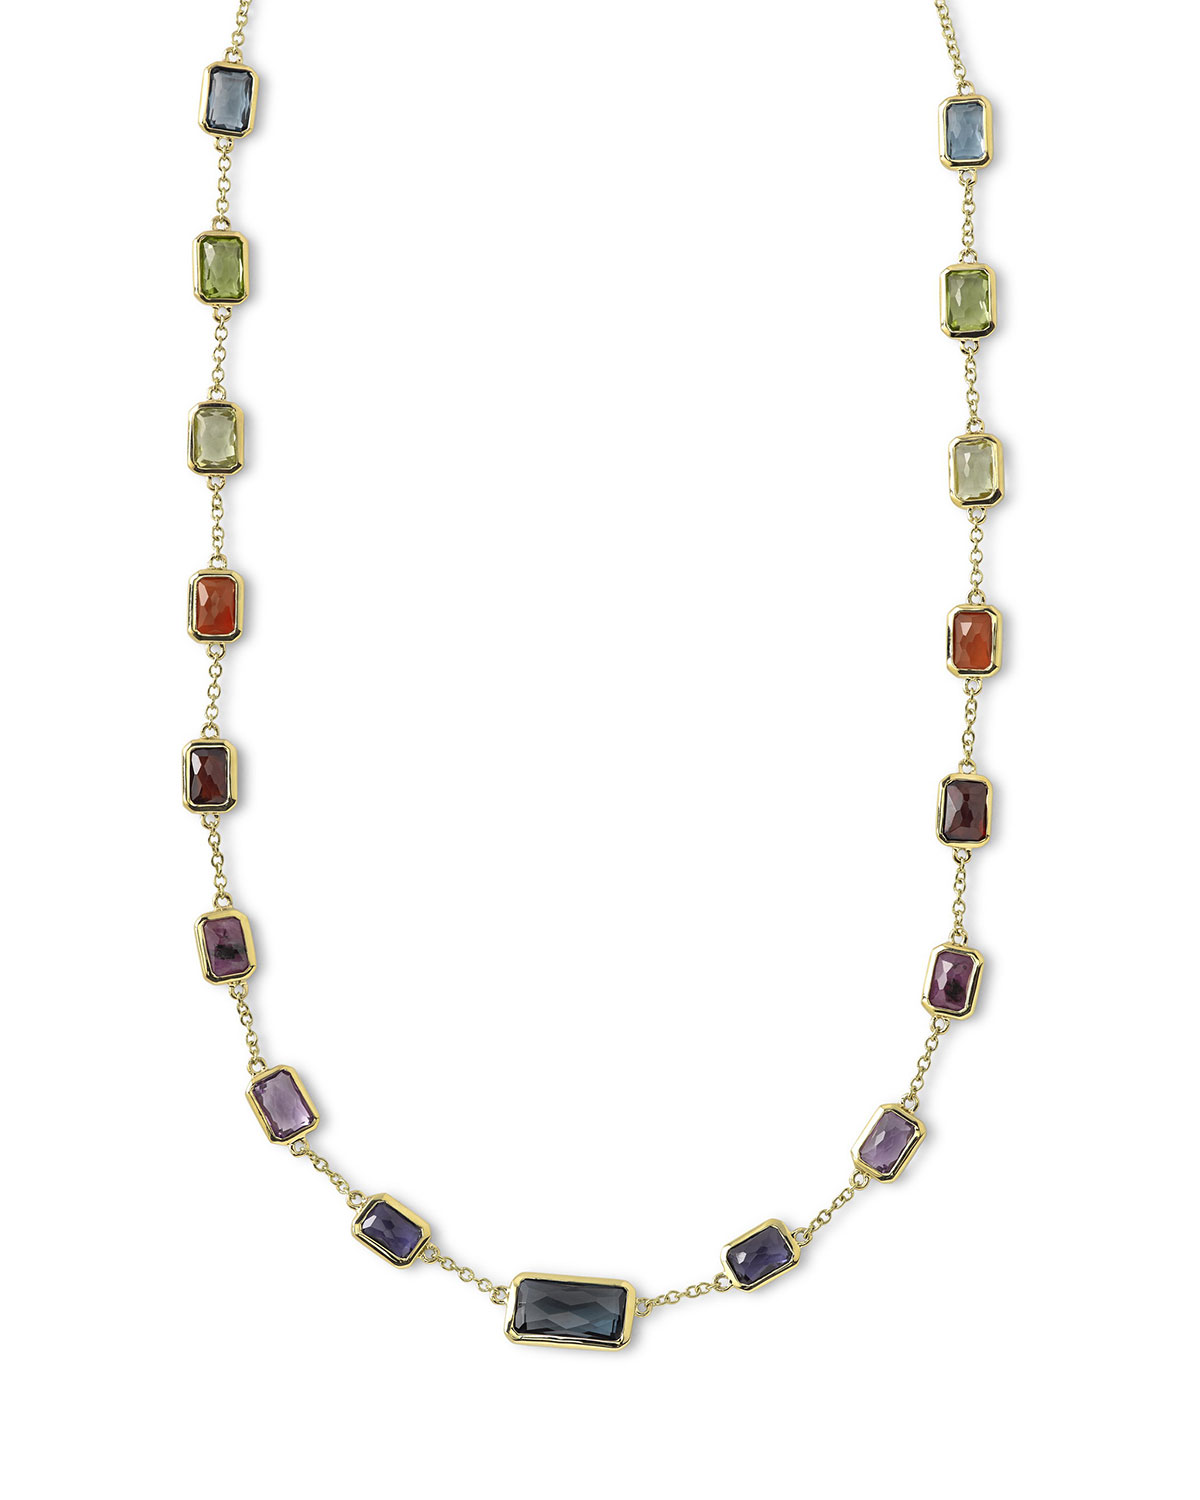 18k Rock Candy Fall Rainbow Chain Necklace, 18